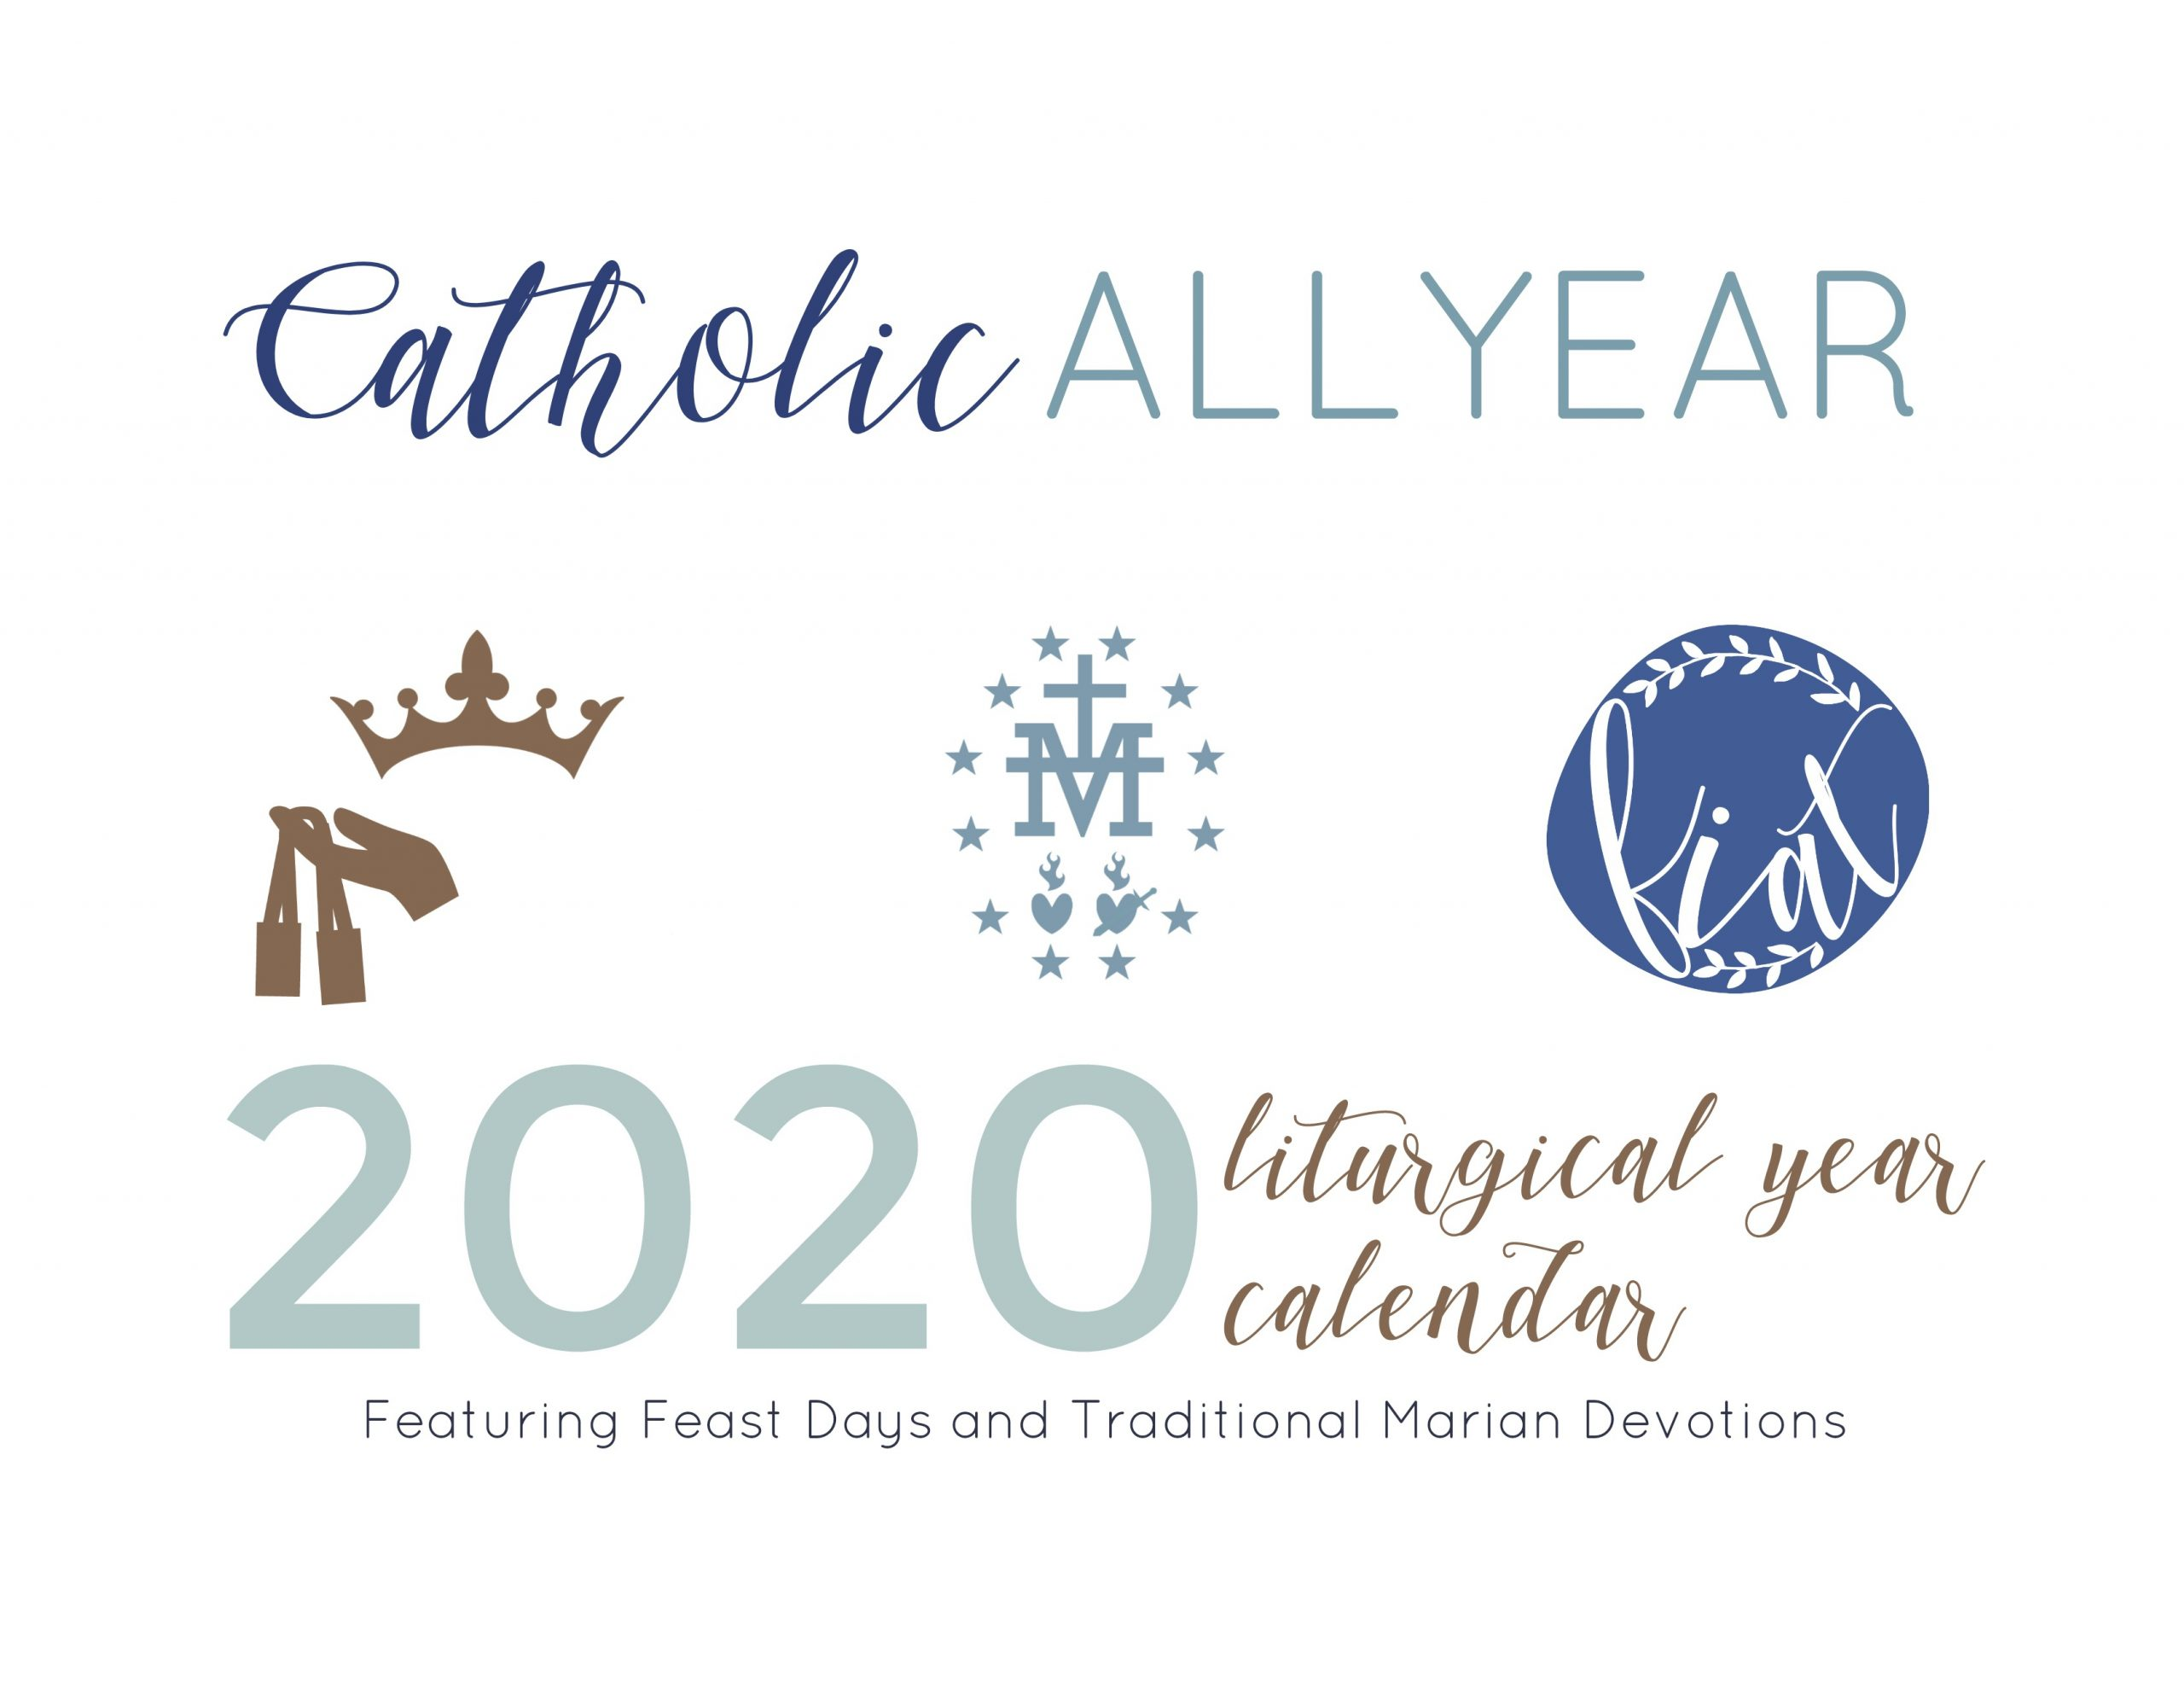 Catholic All Year 2020 Marian Liturgical Year Calendar *digital Download*